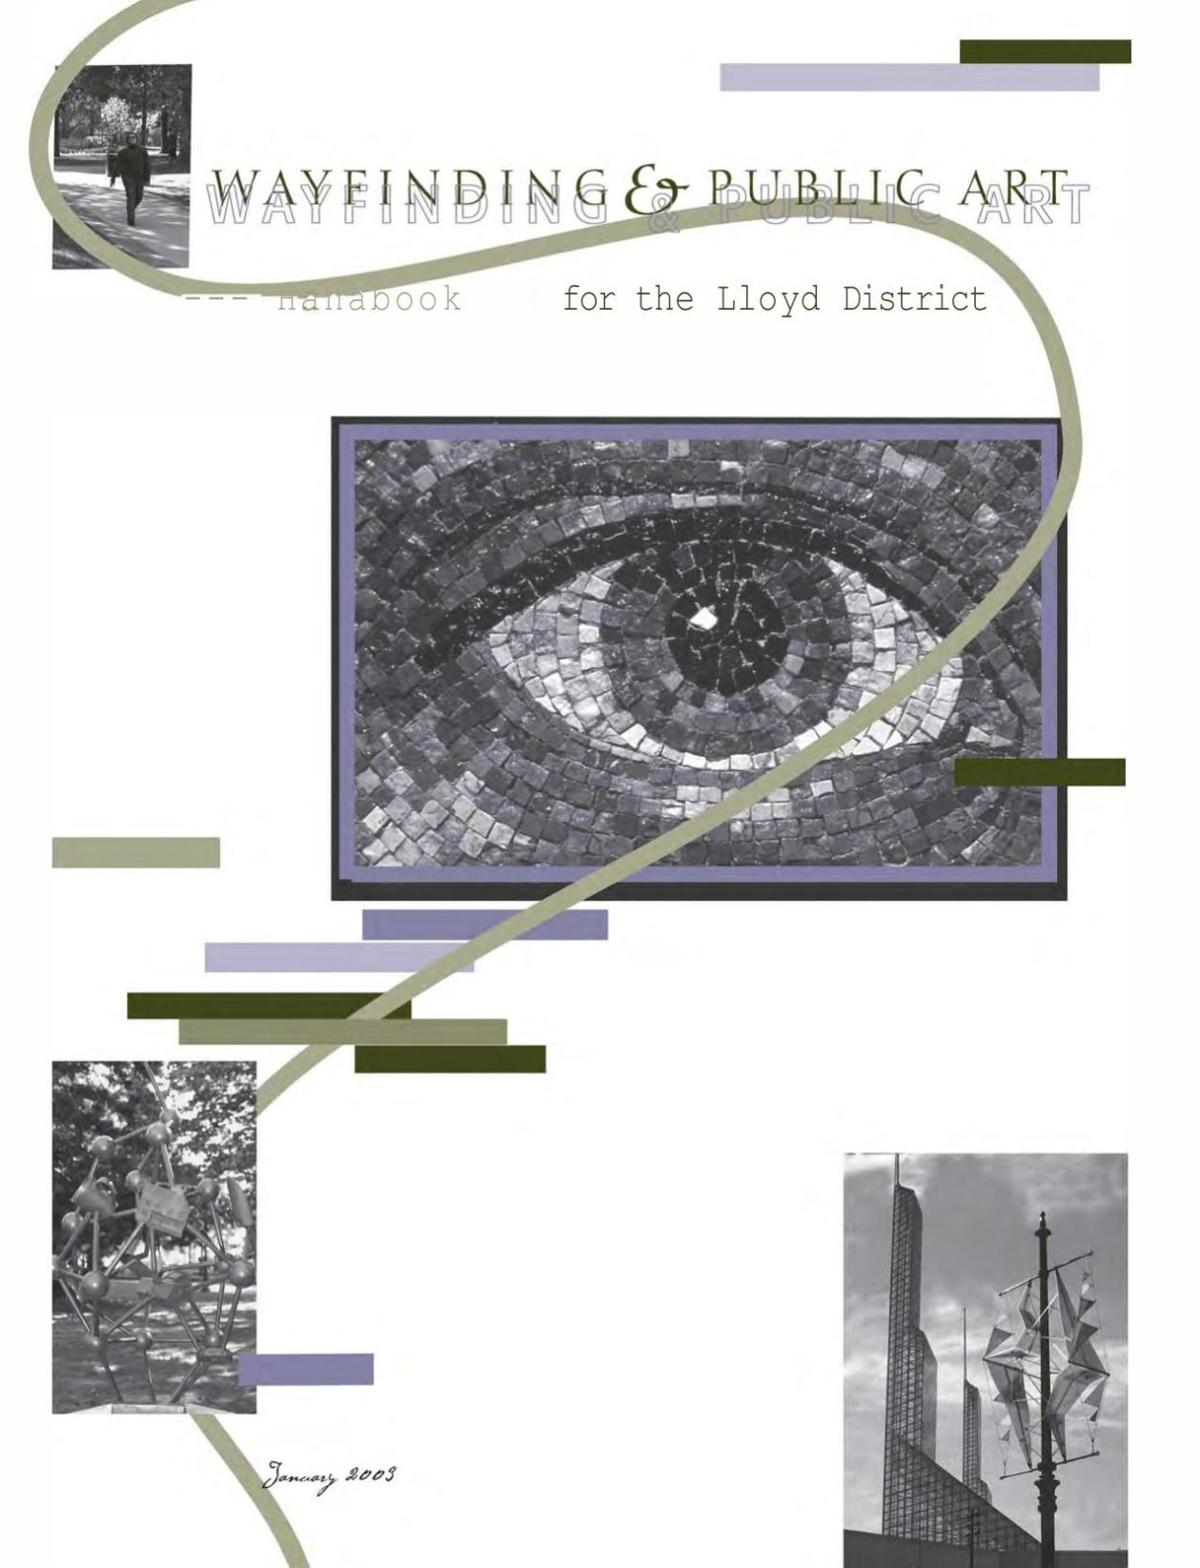 Wayfinding and Public Art for the Lloyd District